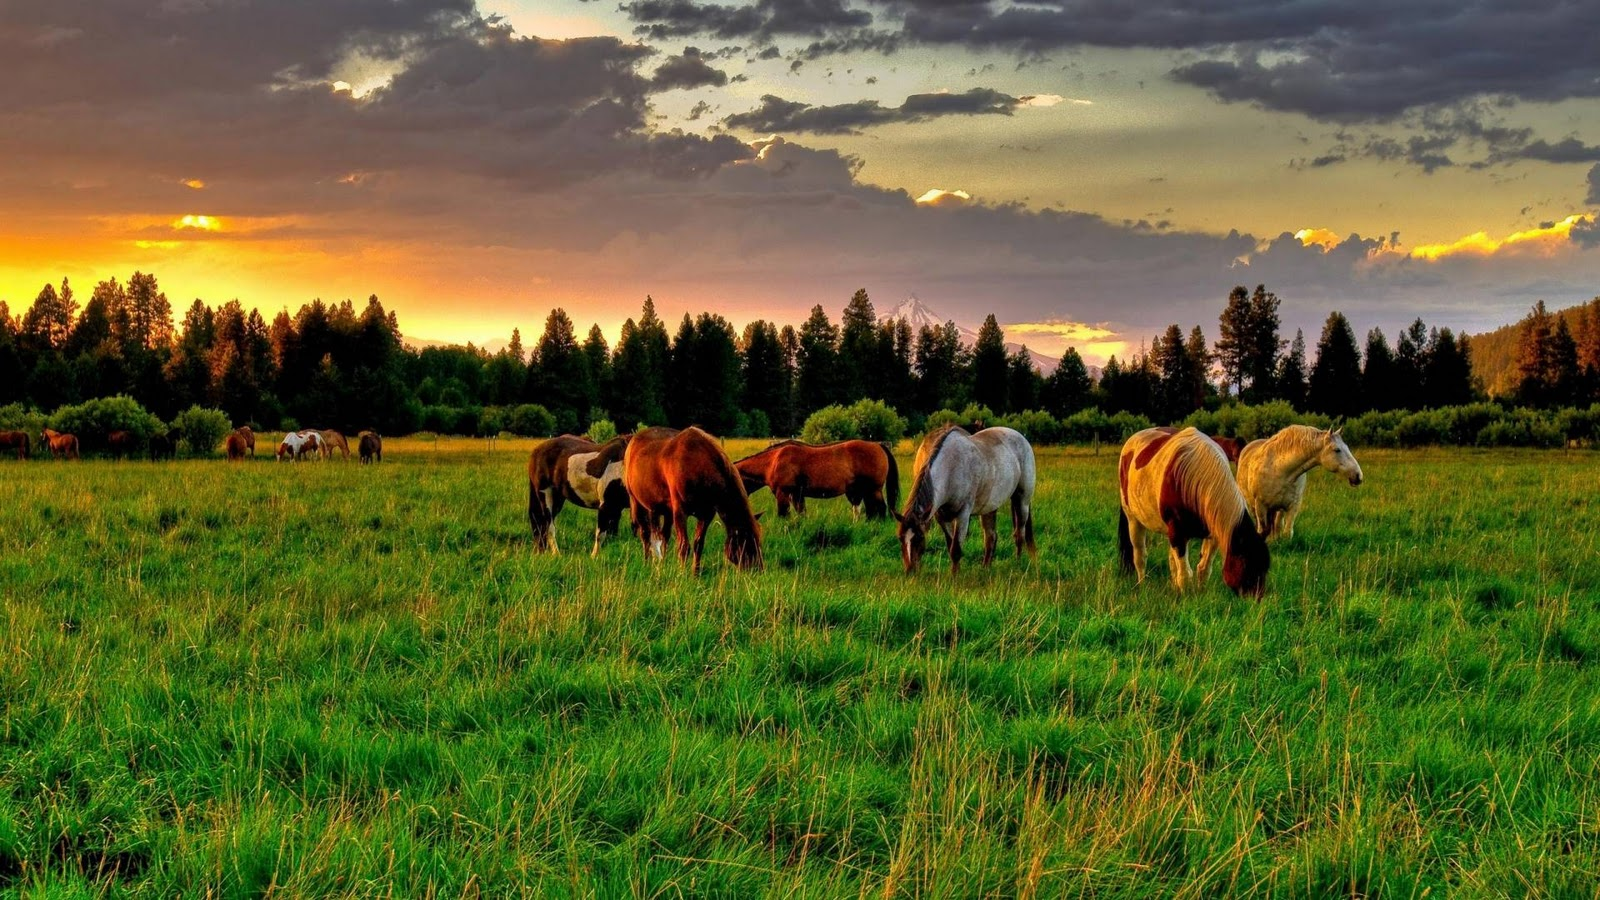 http://2.bp.blogspot.com/-Ll-ctOT1tV8/Tu7TeMlqanI/AAAAAAAAF7A/G-lDmznQmEo/s1600/horses-in-green-field-hd-wallpaper.jpg